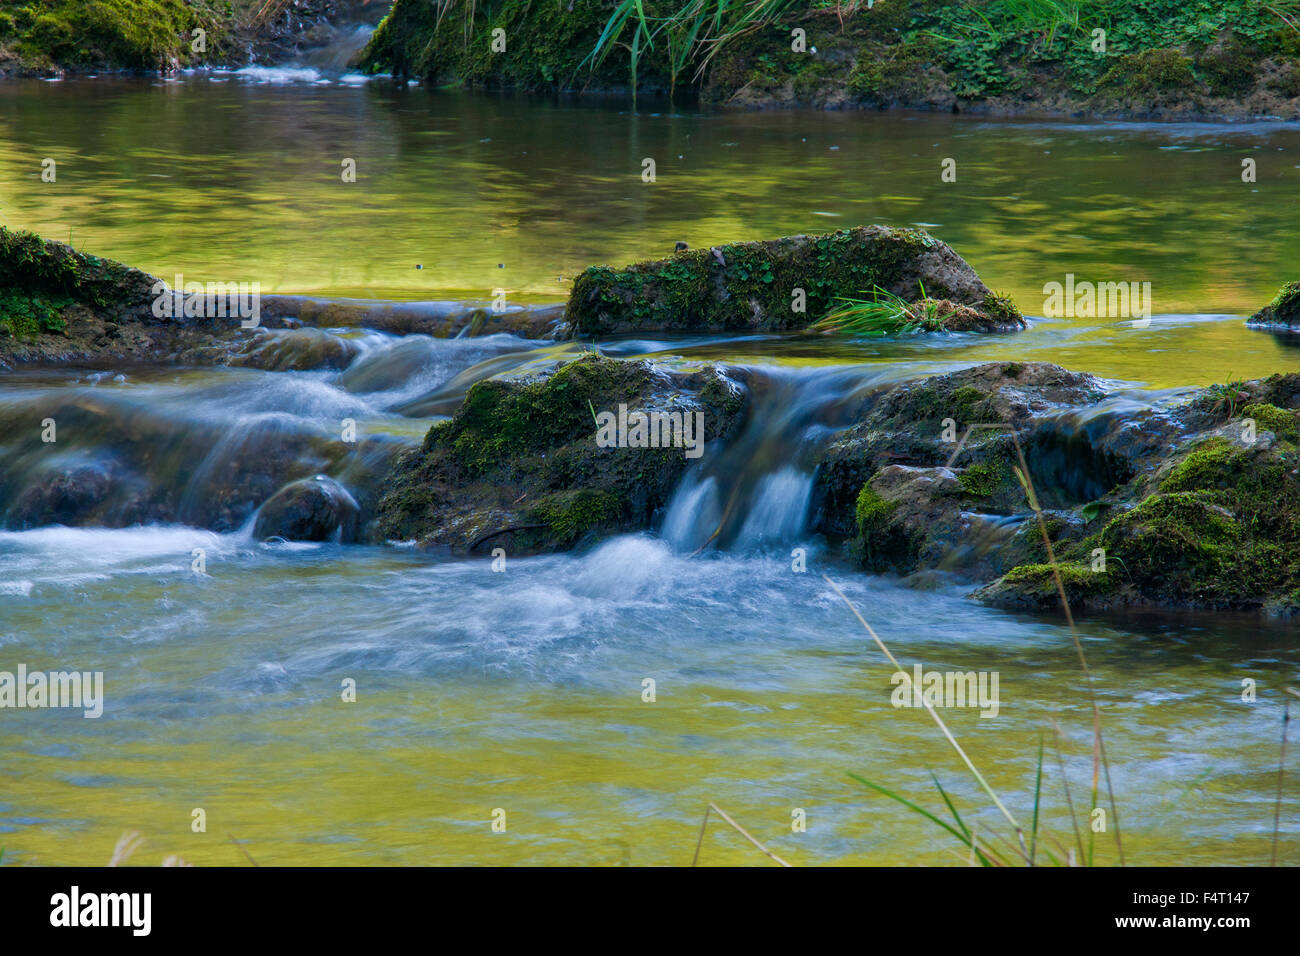 Fish stair in the Sur, - small river in the Rupertiwinkel - seen near Teisendorf - Stock Image